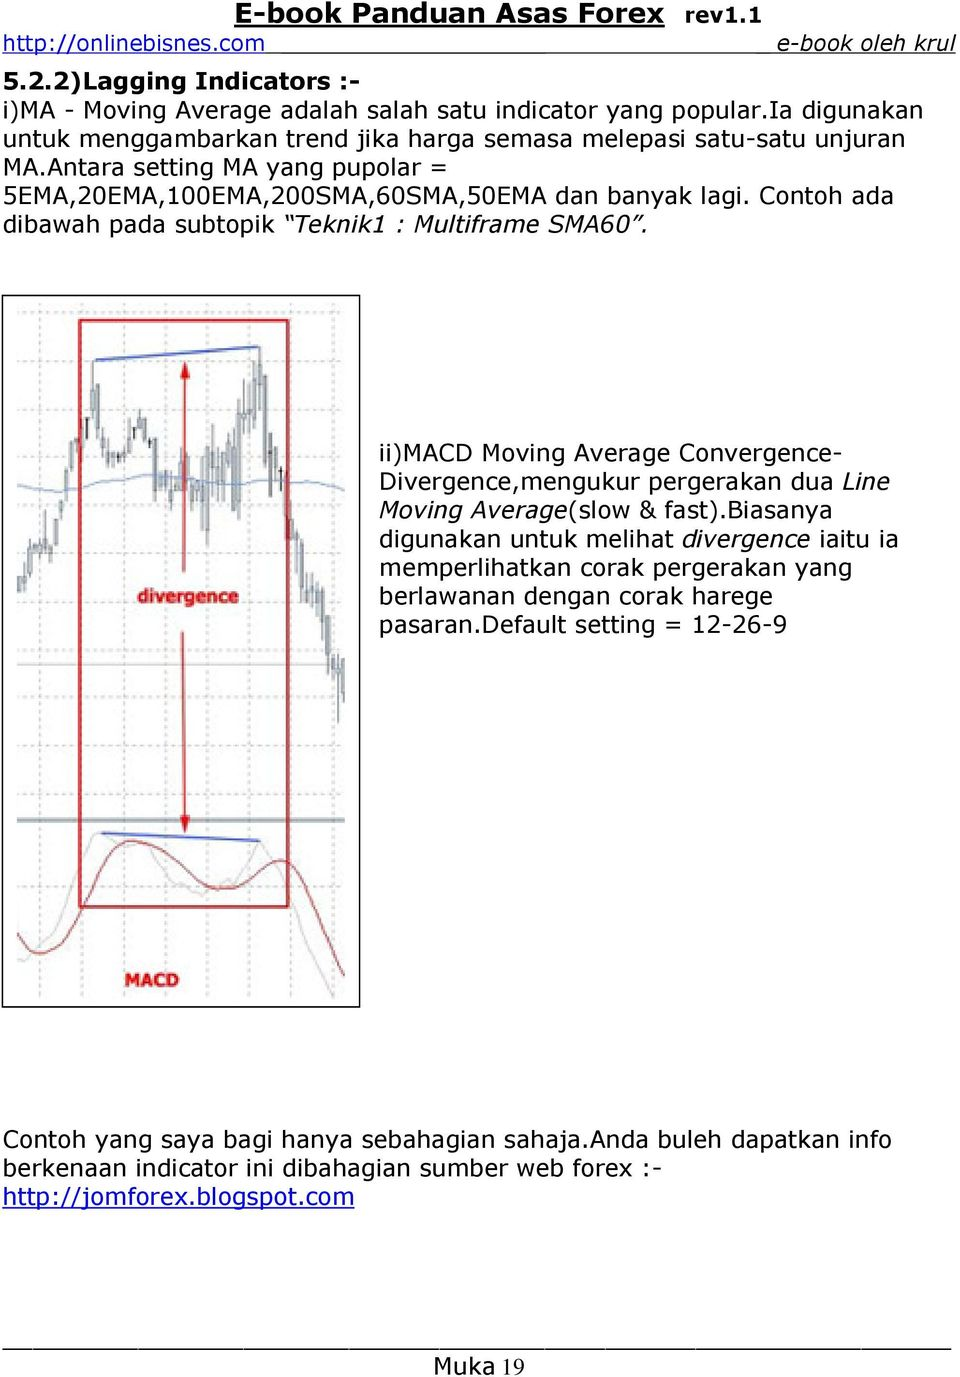 ii)macd Moving Average Convergence- Divergence,mengukur pergerakan dua Line Moving Average(slow & fast).